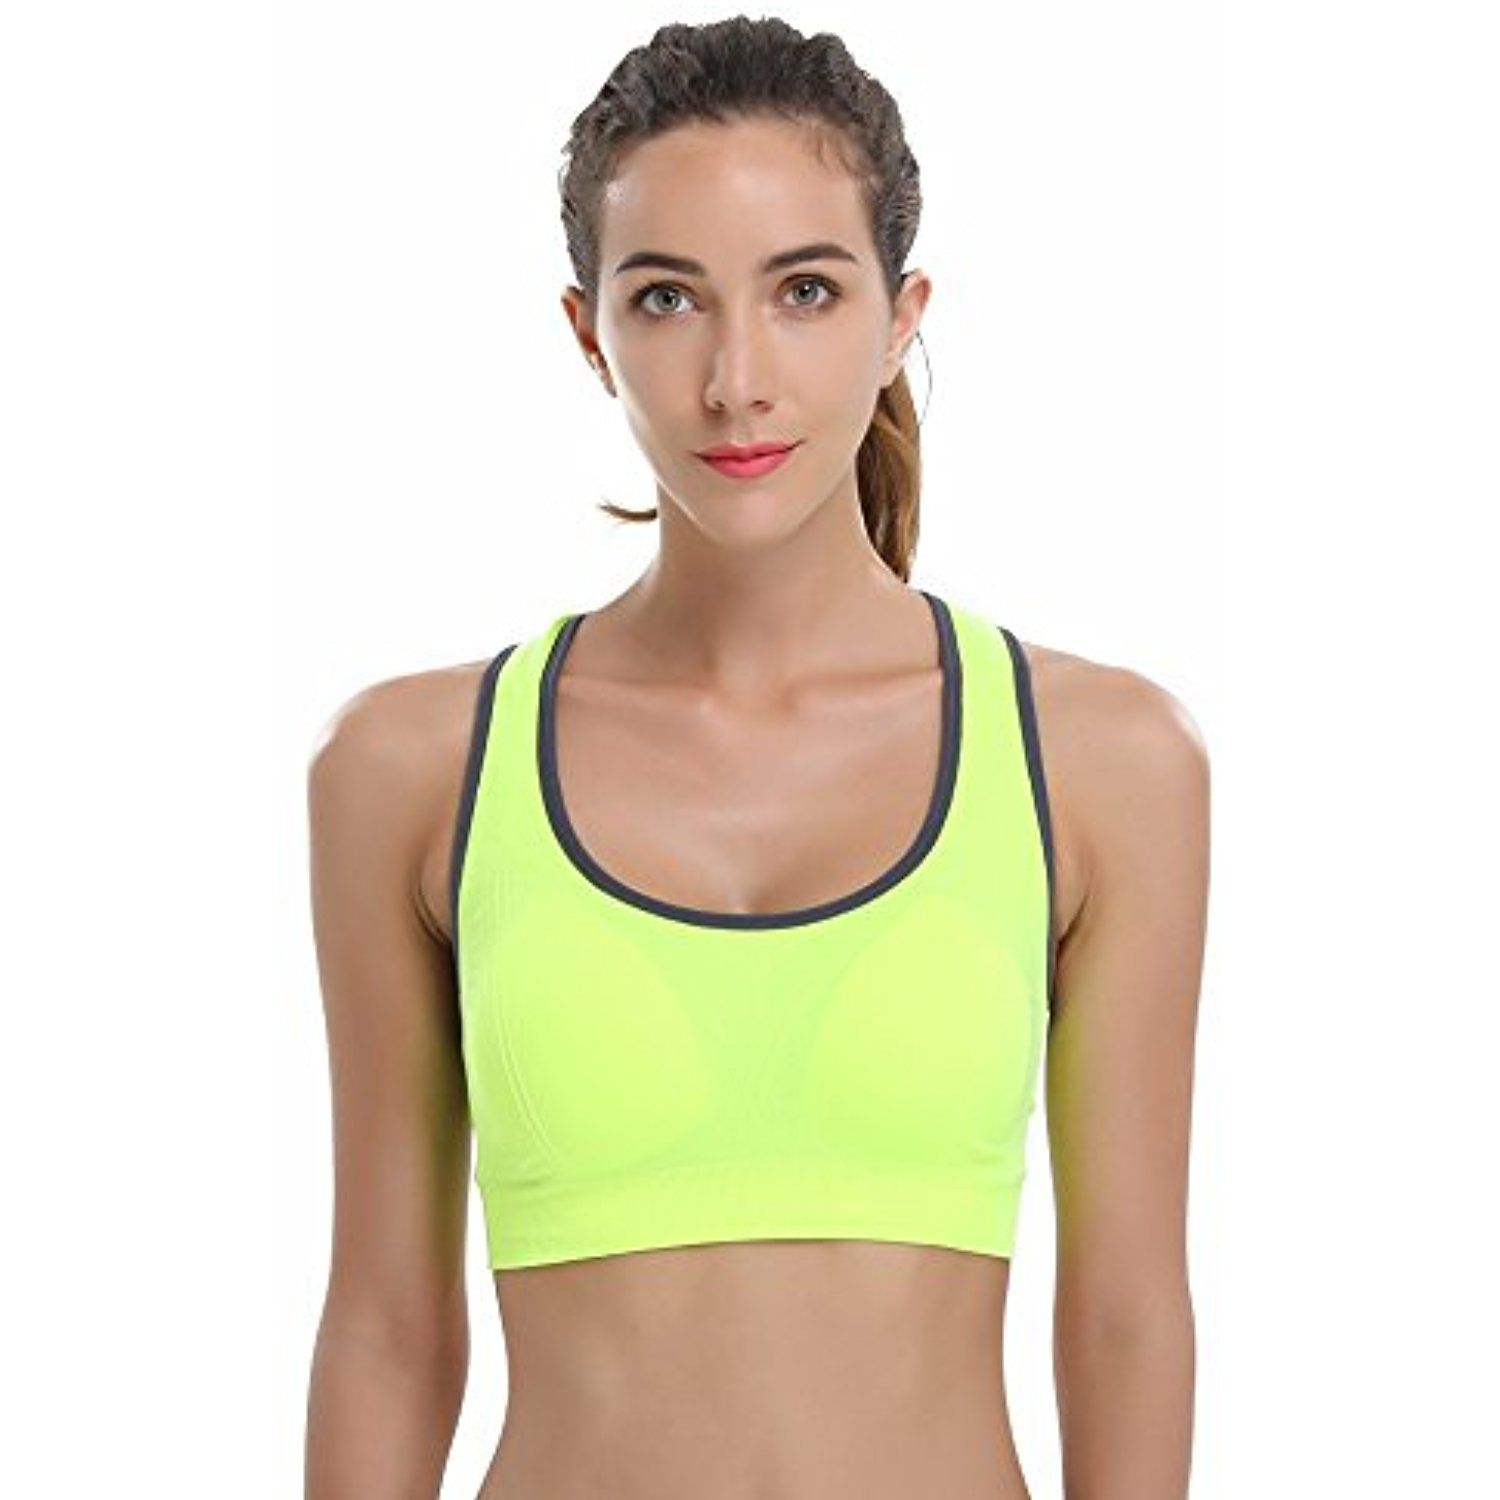 e9f08e7de22e4 VIQIYA Women's High Impact Sport Bra Removable Padded Breathable Gym and  Yoga Racerback